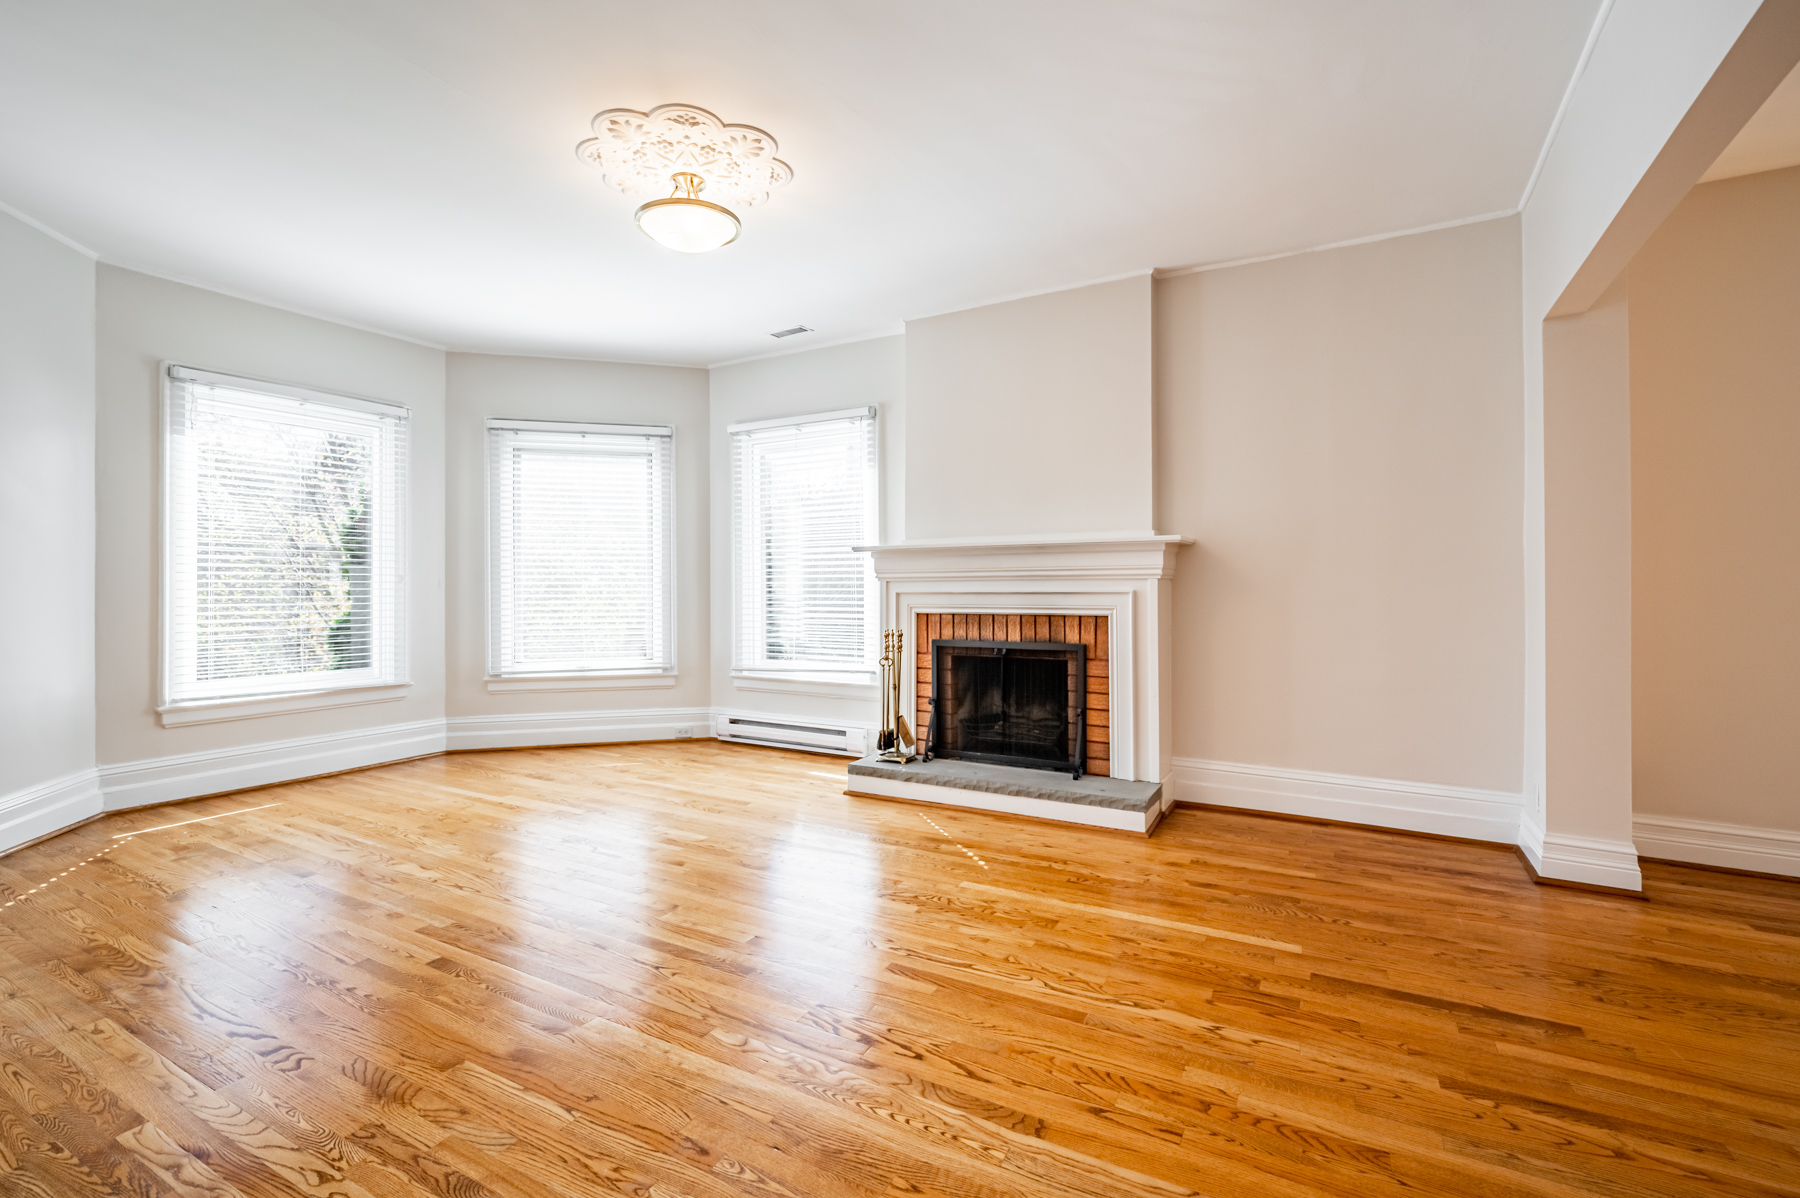 98 Bedford Rd living room with 3 large windows, ceiling lamp and fireplace.